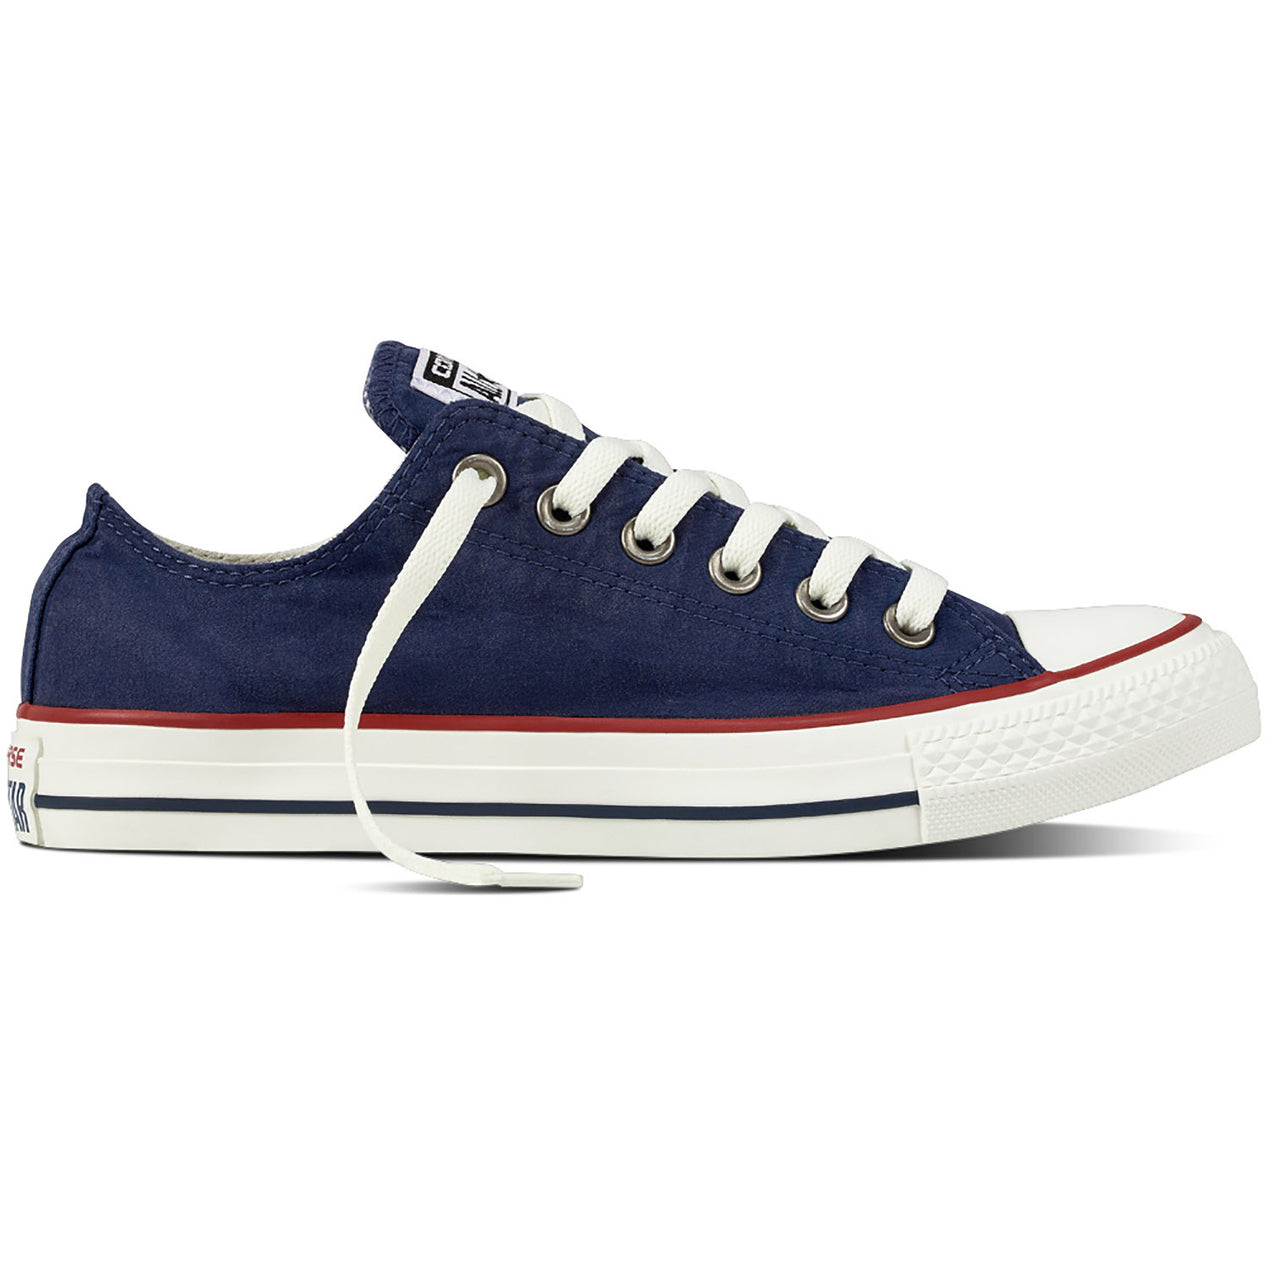 24f00a0a46d7 Converse Unisex Chuck Taylor All Star - Ox Ombre Wash